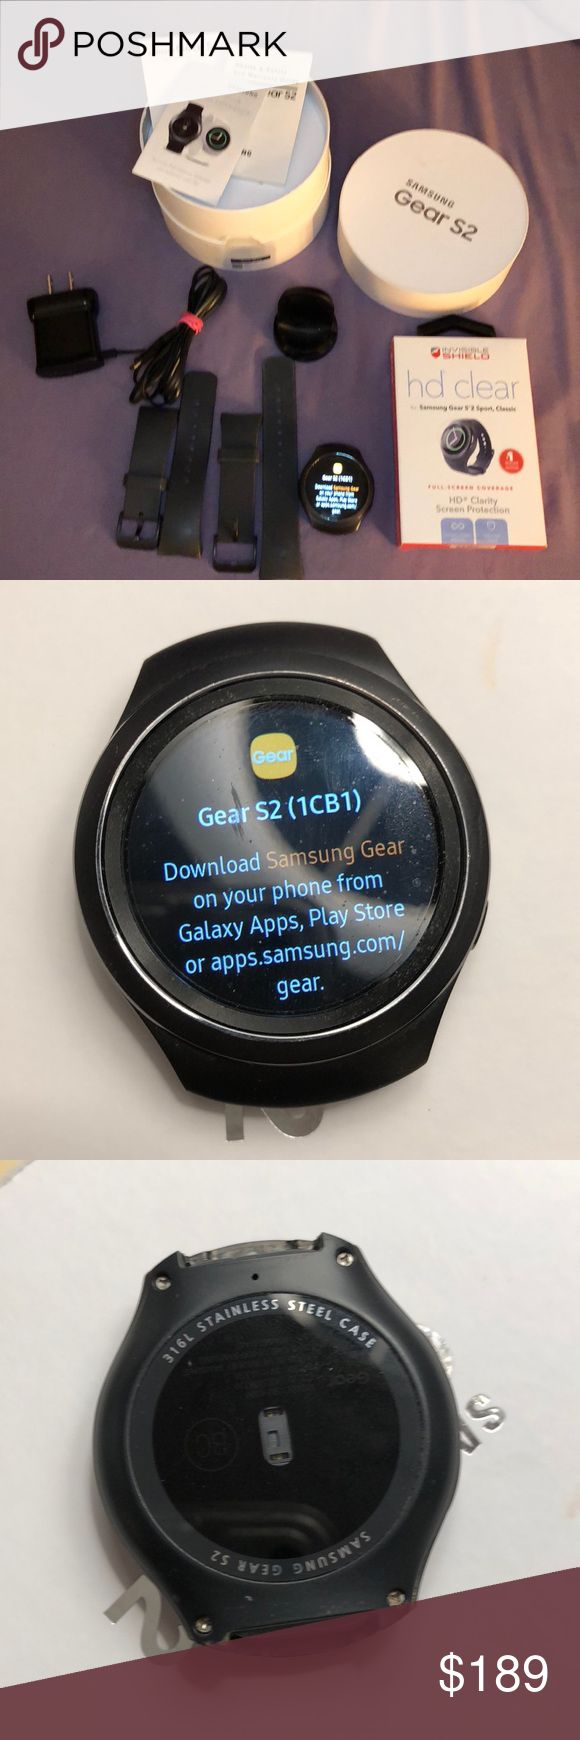 Samsung Gear S2 Sport Classic Watch Dark Grey Samsung Gear S2 2015 sport watch w/ large and small watchbands. I only used it for 3 months and switched to an IPhone so it's gently used. It's compatible with select Android 4.4 and later devices with 1.5GB RAM. Wireless charging, certified dust and water resistant, Bluetooth 4.1 and Wi-Fi compatible too. Including spare Zagg screen protector. Samsung Accessories Watches